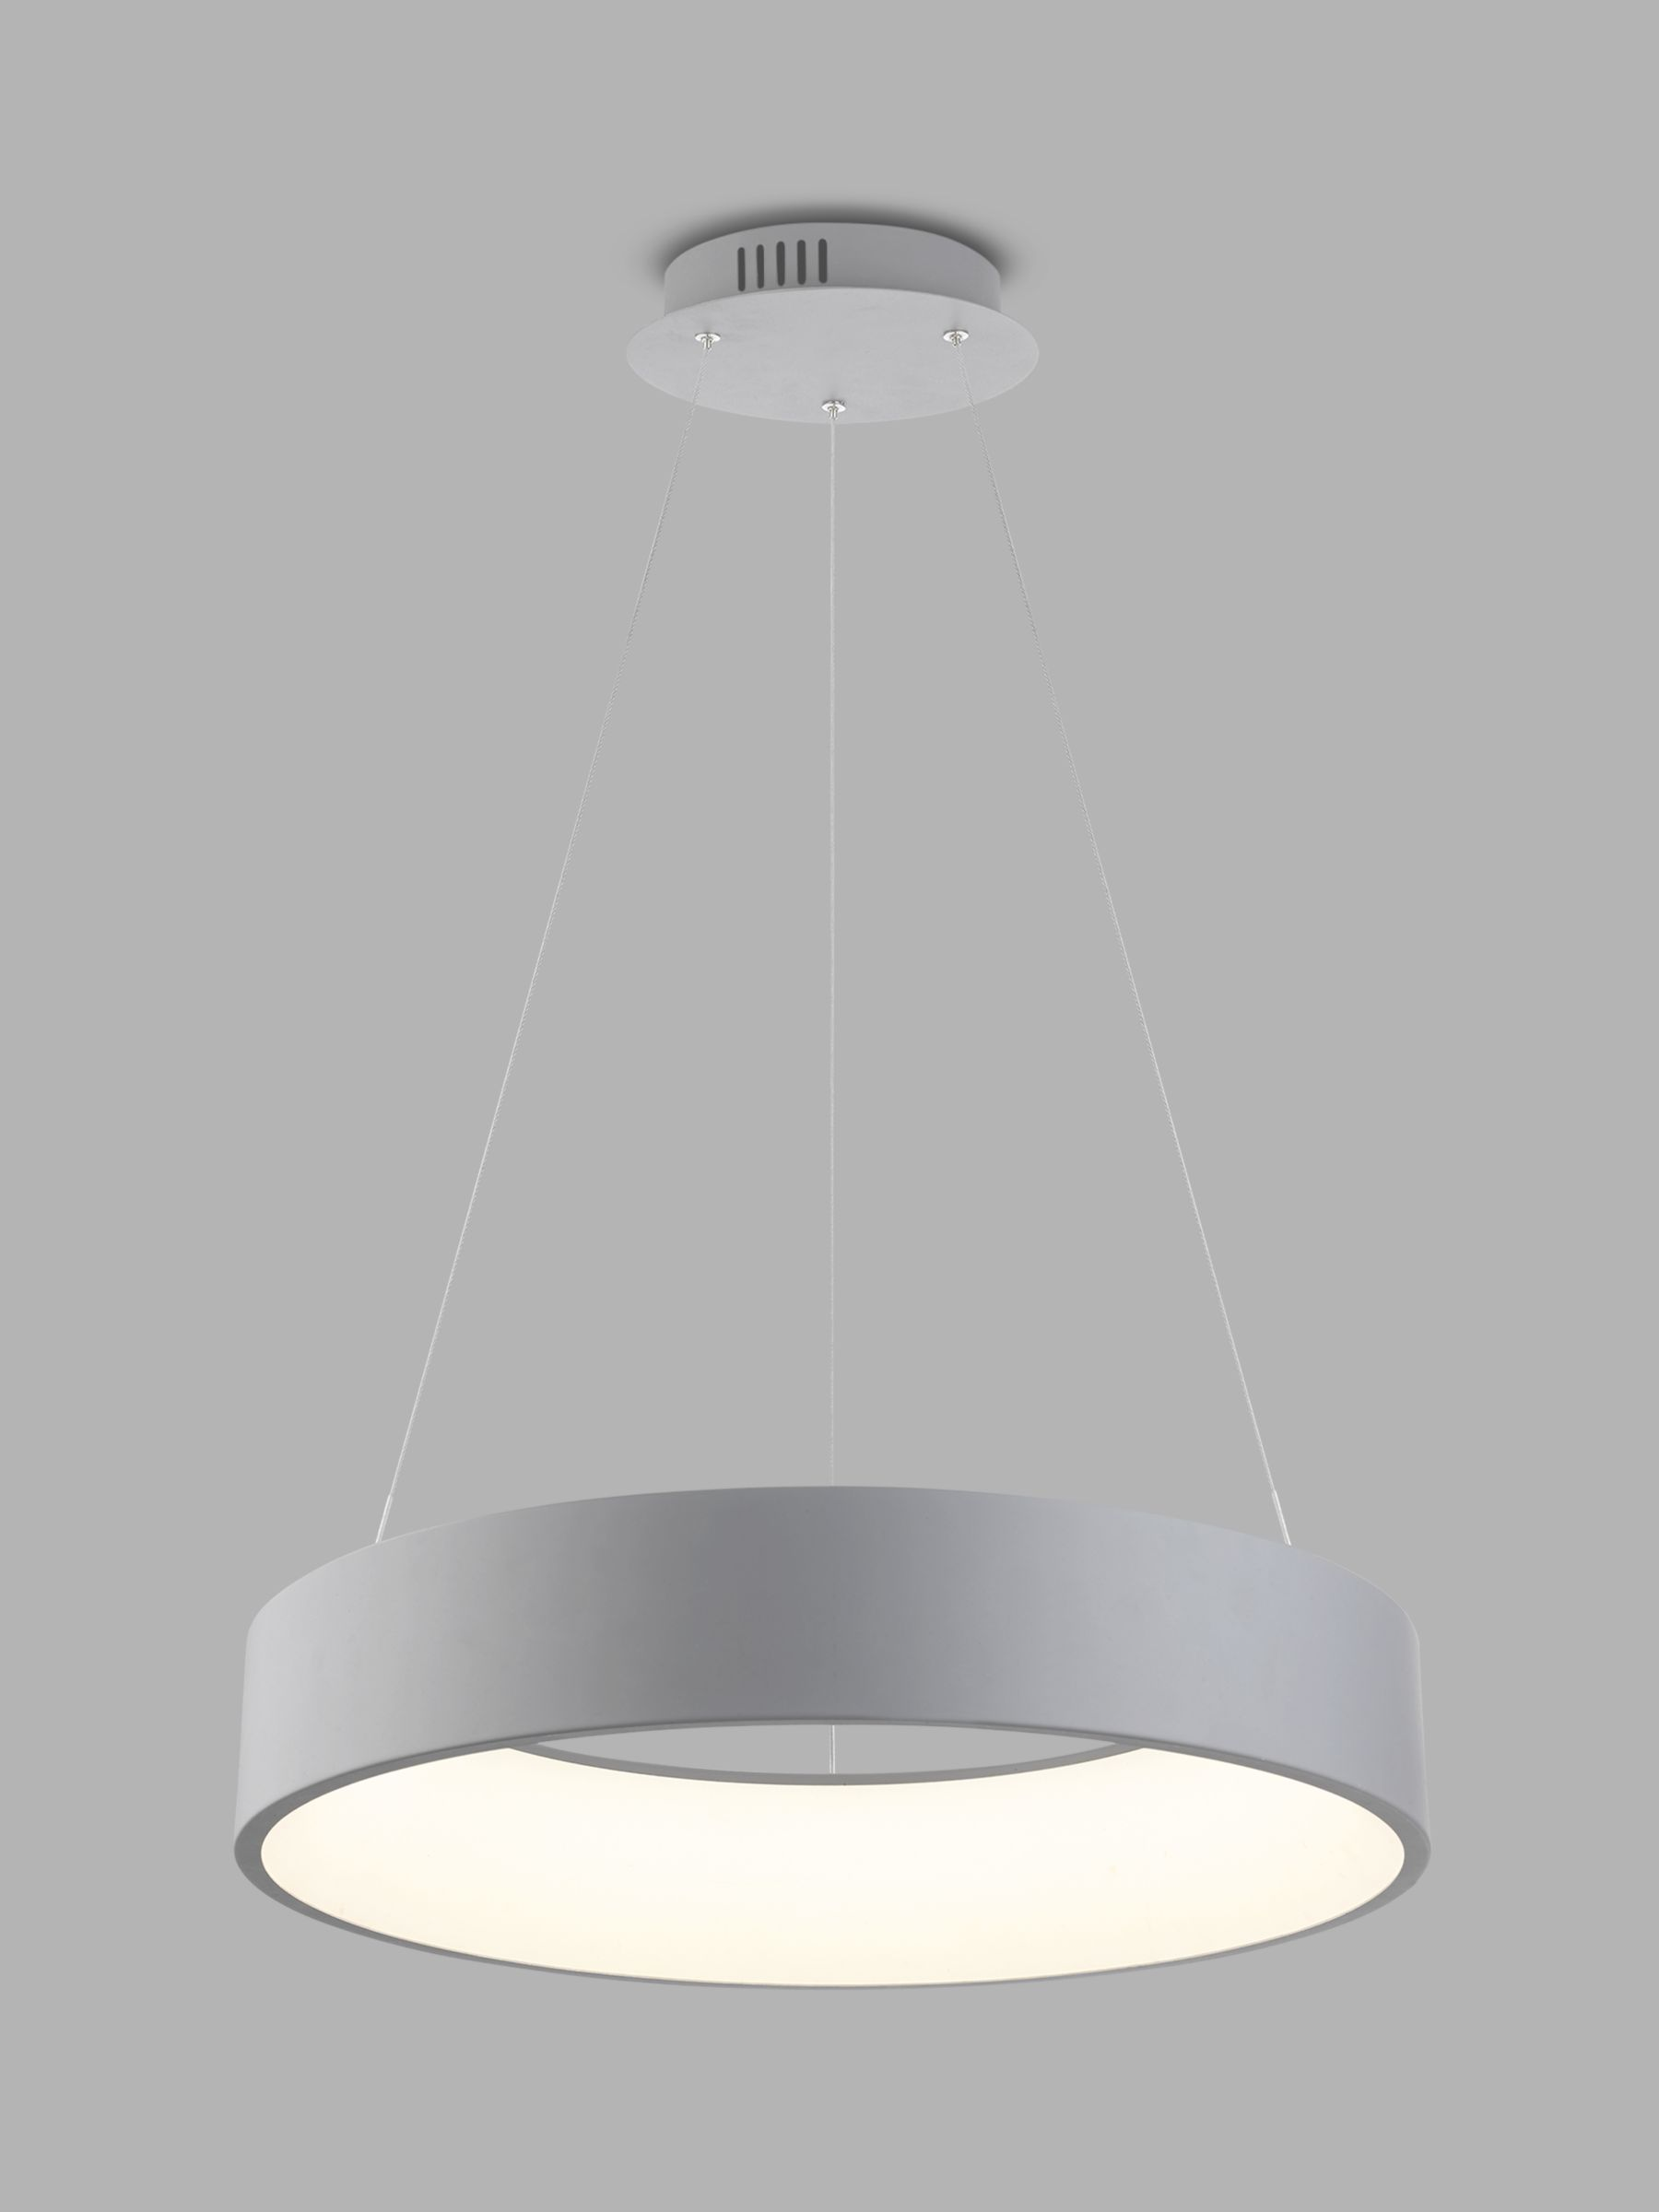 Design Project by John Lewis Design Project by John Lewis No.132 Finn LED Hoop Ceiling Light